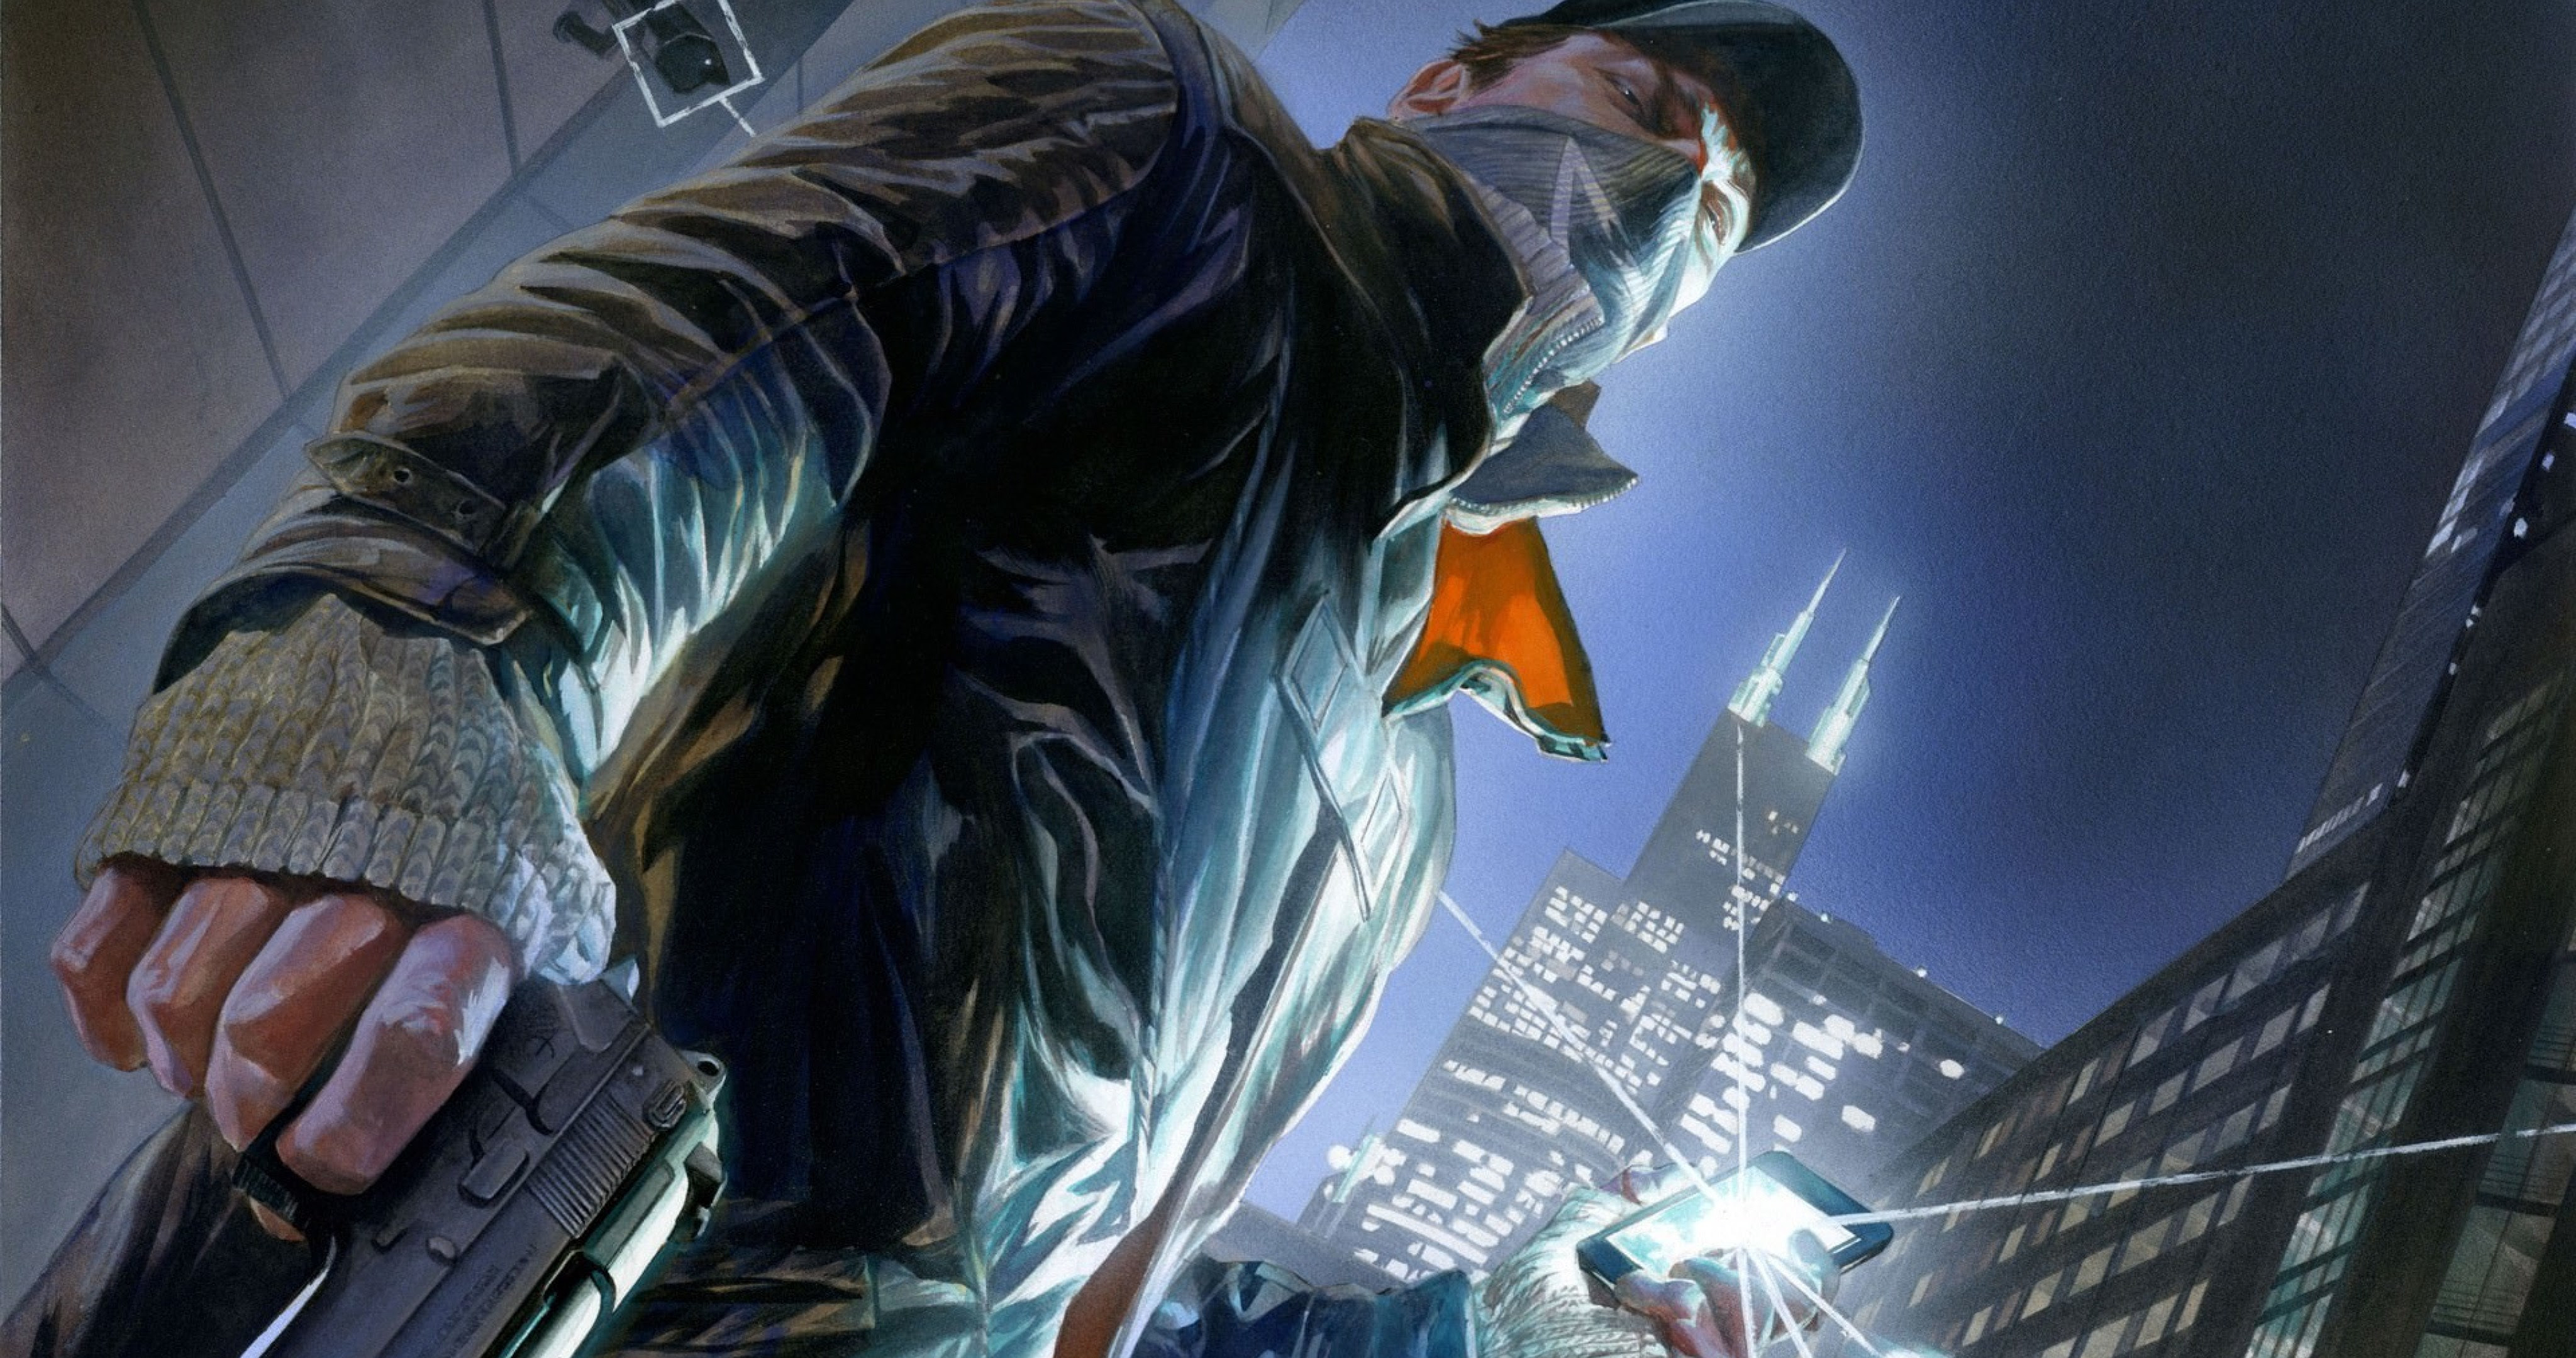 Watch Dogs Aiden Pearce 4k Ultra Hd Wallpaper High Quality Walls Images, Photos, Reviews